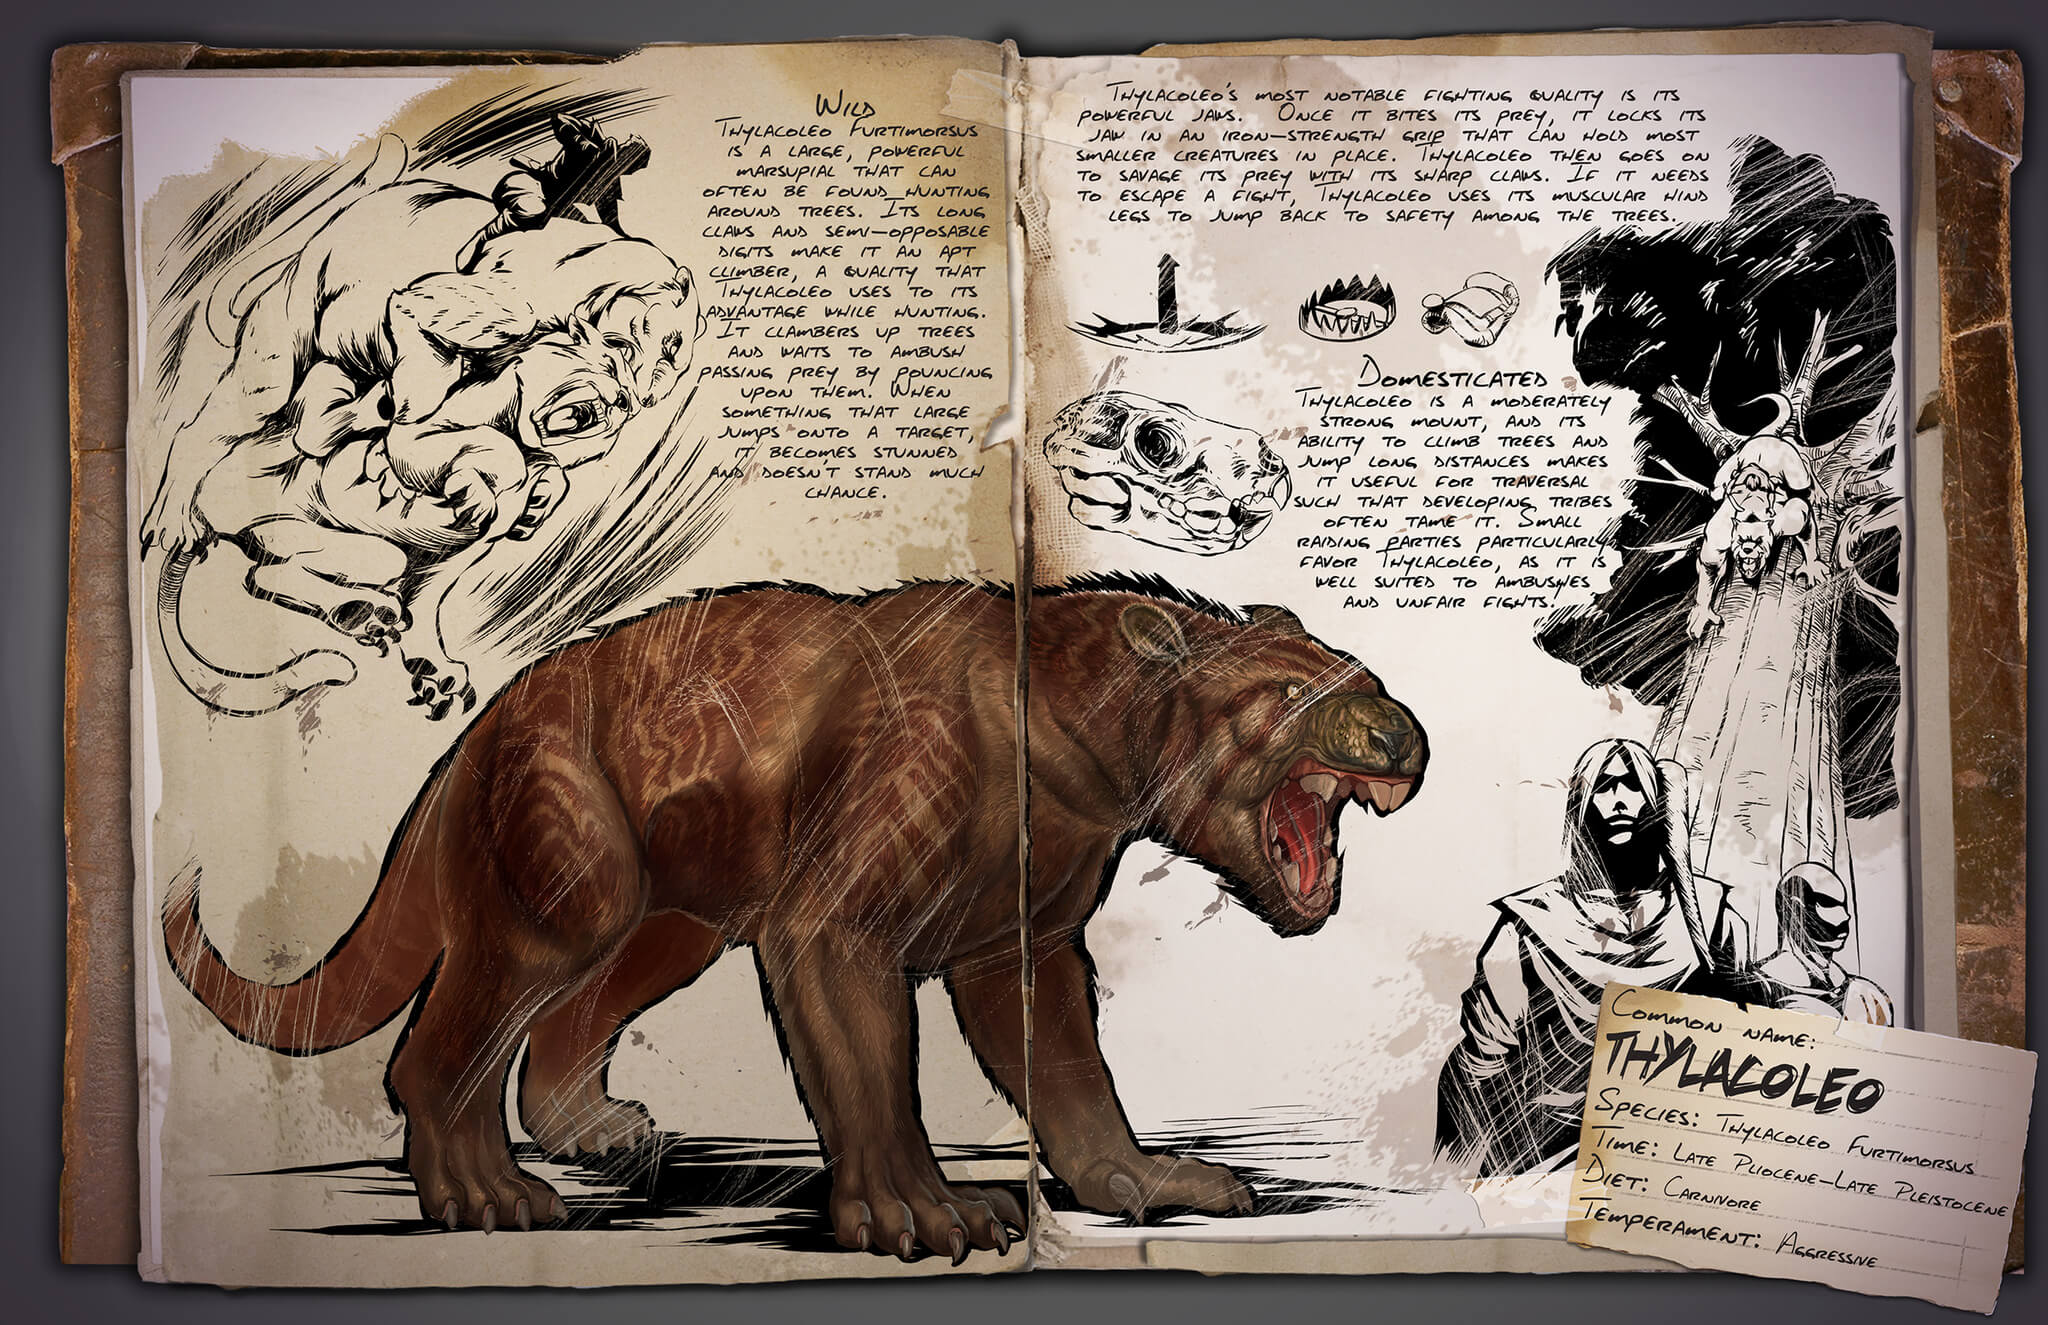 Thylacoleo Survive Ark Ark survival evolved is out now for pc, ps4 and xbox one. survive ark